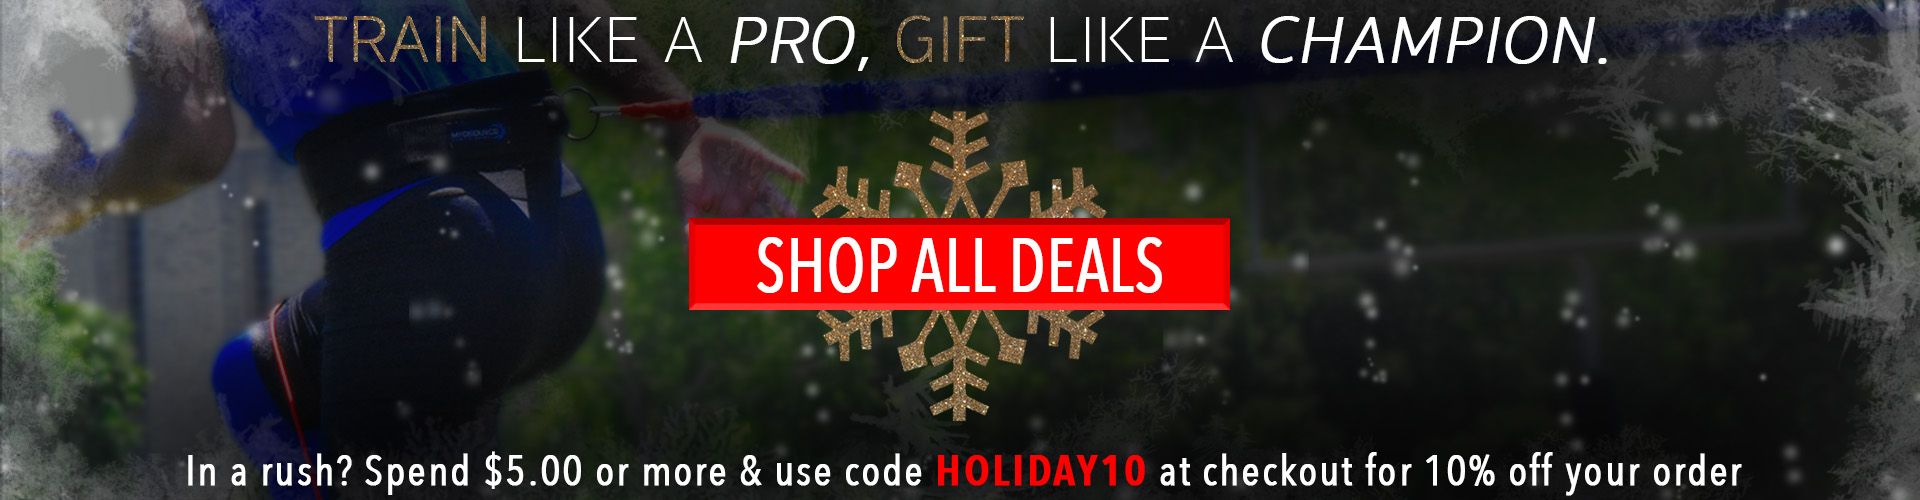 Train like a pro, gift like a champion. Shop all deals. In a rush? Spend $5.00 or more & use code HOLIDAY10 at checkout for 10% off your order.